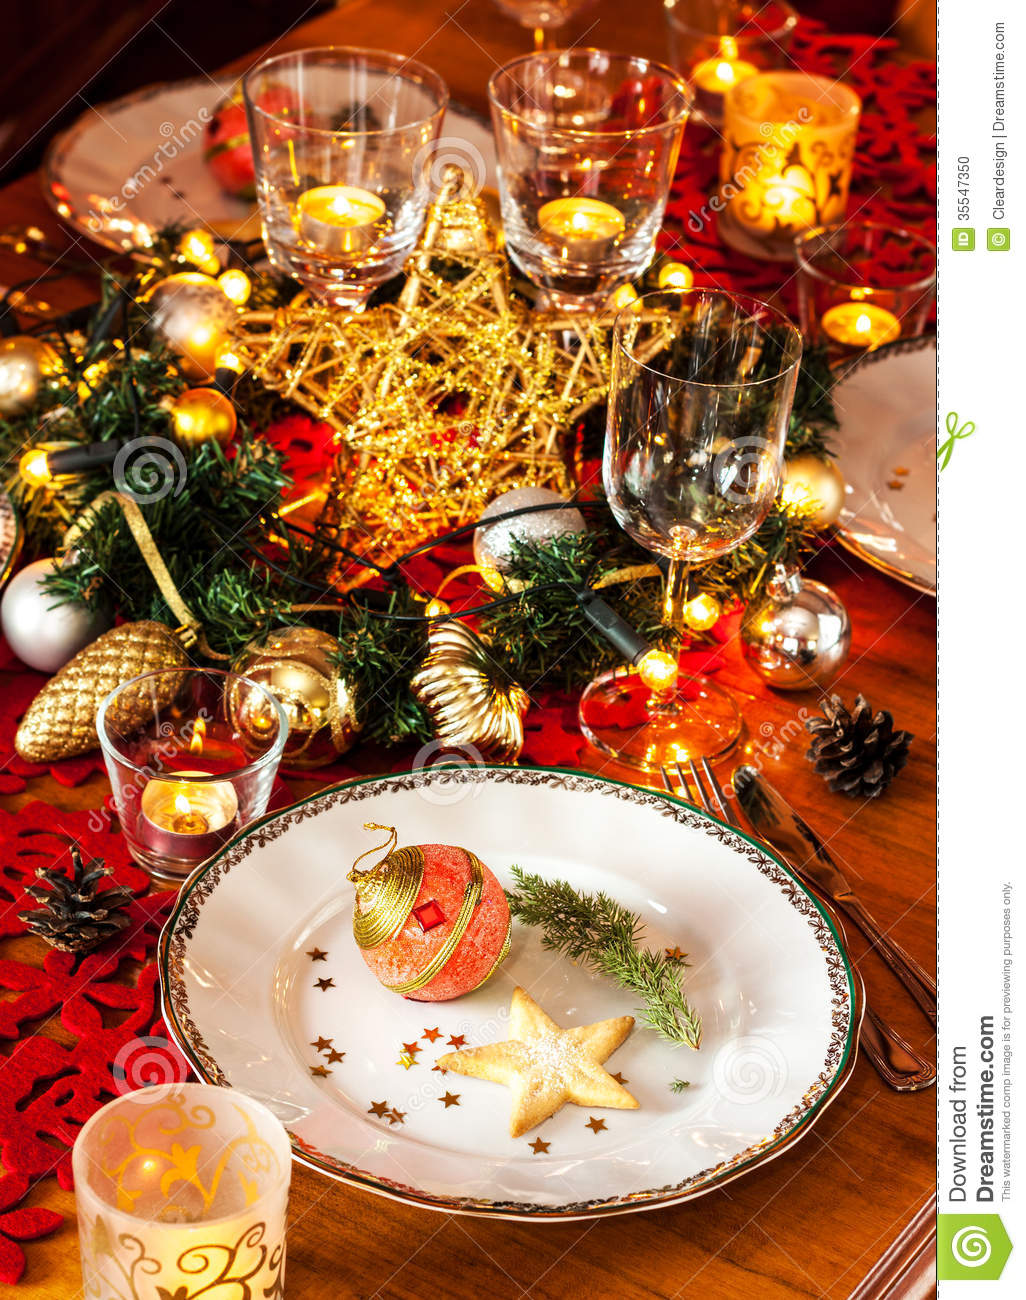 Italian Christmas Table Decorations   You Can Download All Images And  Photos For Free. Please Contribute With Us To Share This Post To Your  Social Media Or ...